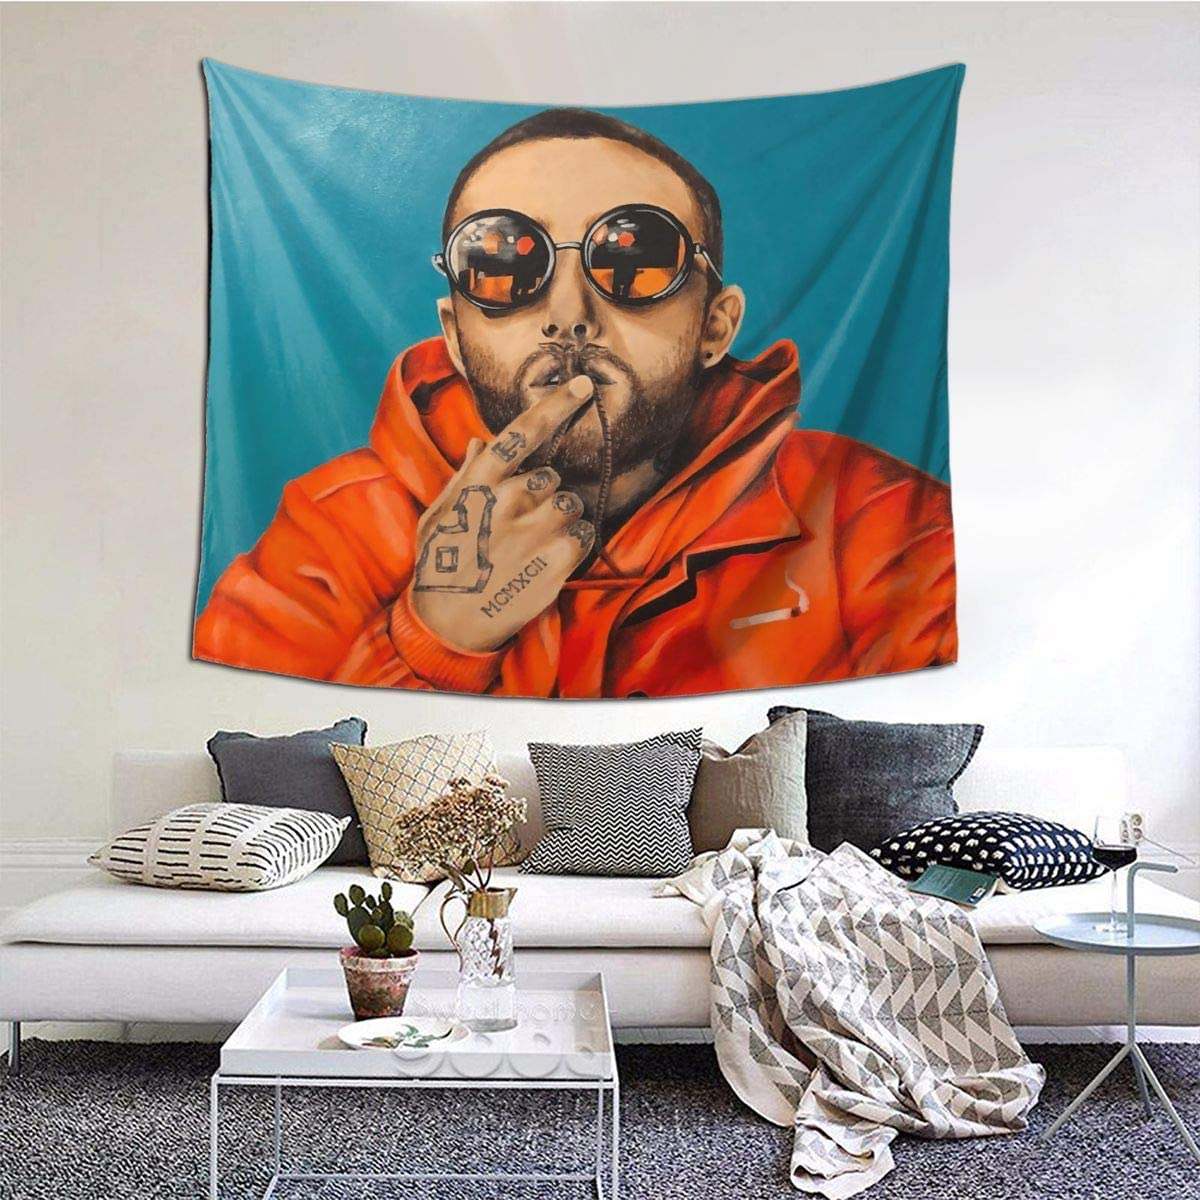 Feiteng MA-C Miller Tapestry Living Room Bedroom Home Decor Tapestries Art Wall Hanging Blanket 60x51in